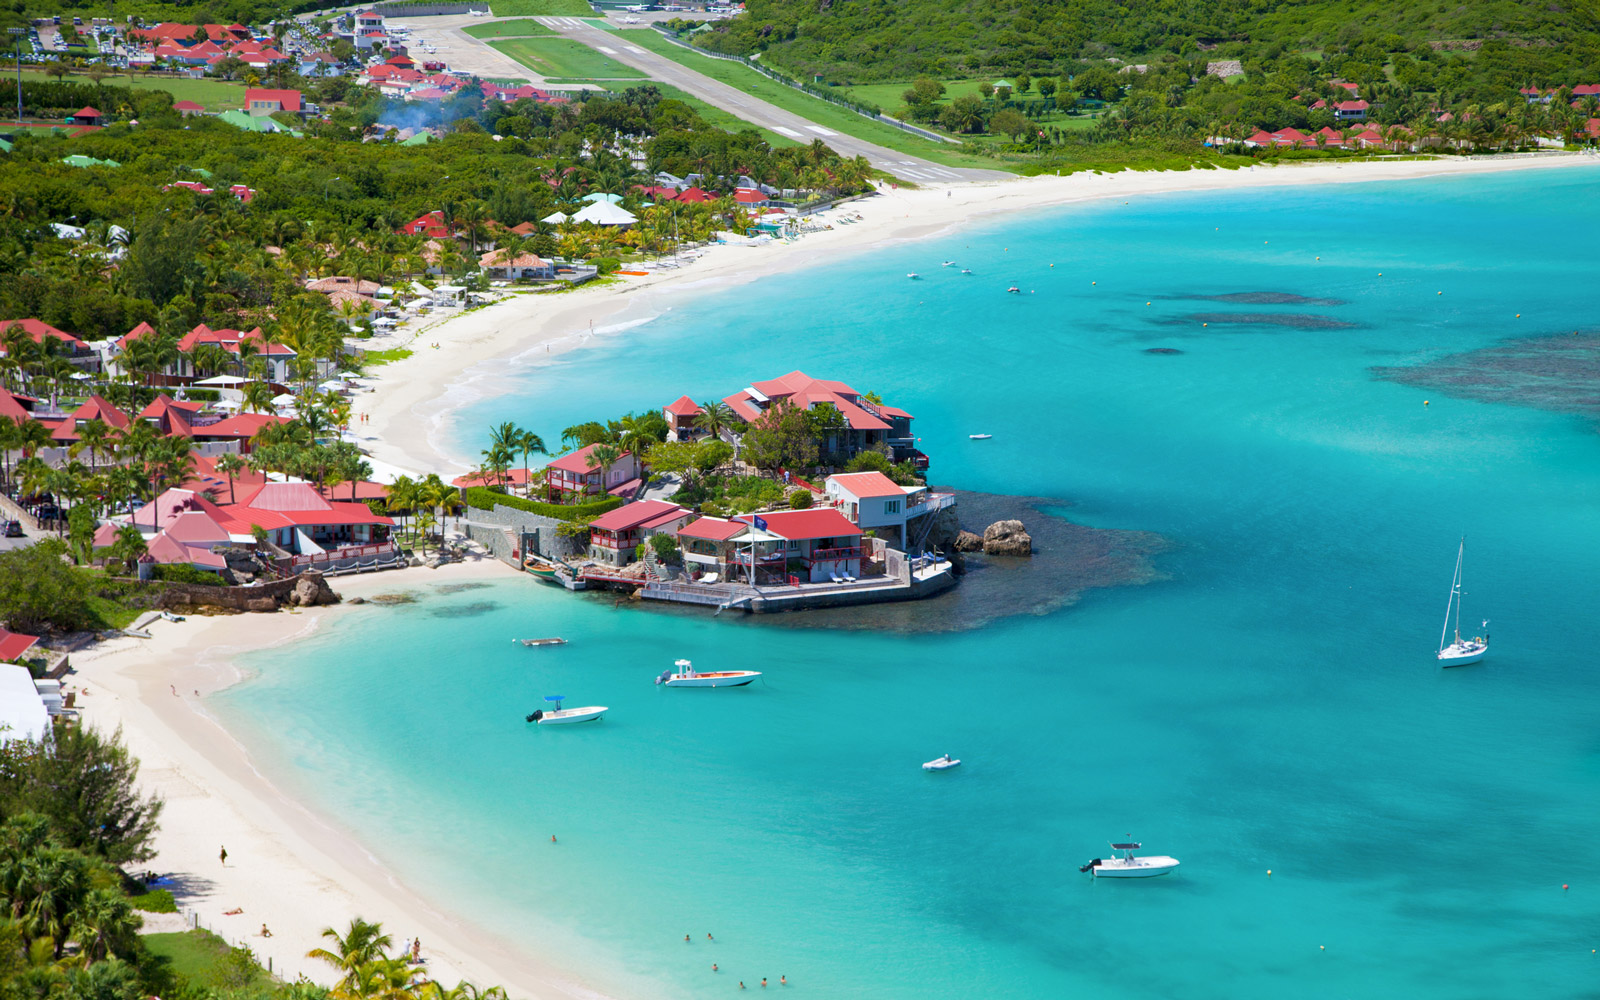 St. Bart's Most Exclusive Resort Is Owned by Pippa Middleton's New In-laws